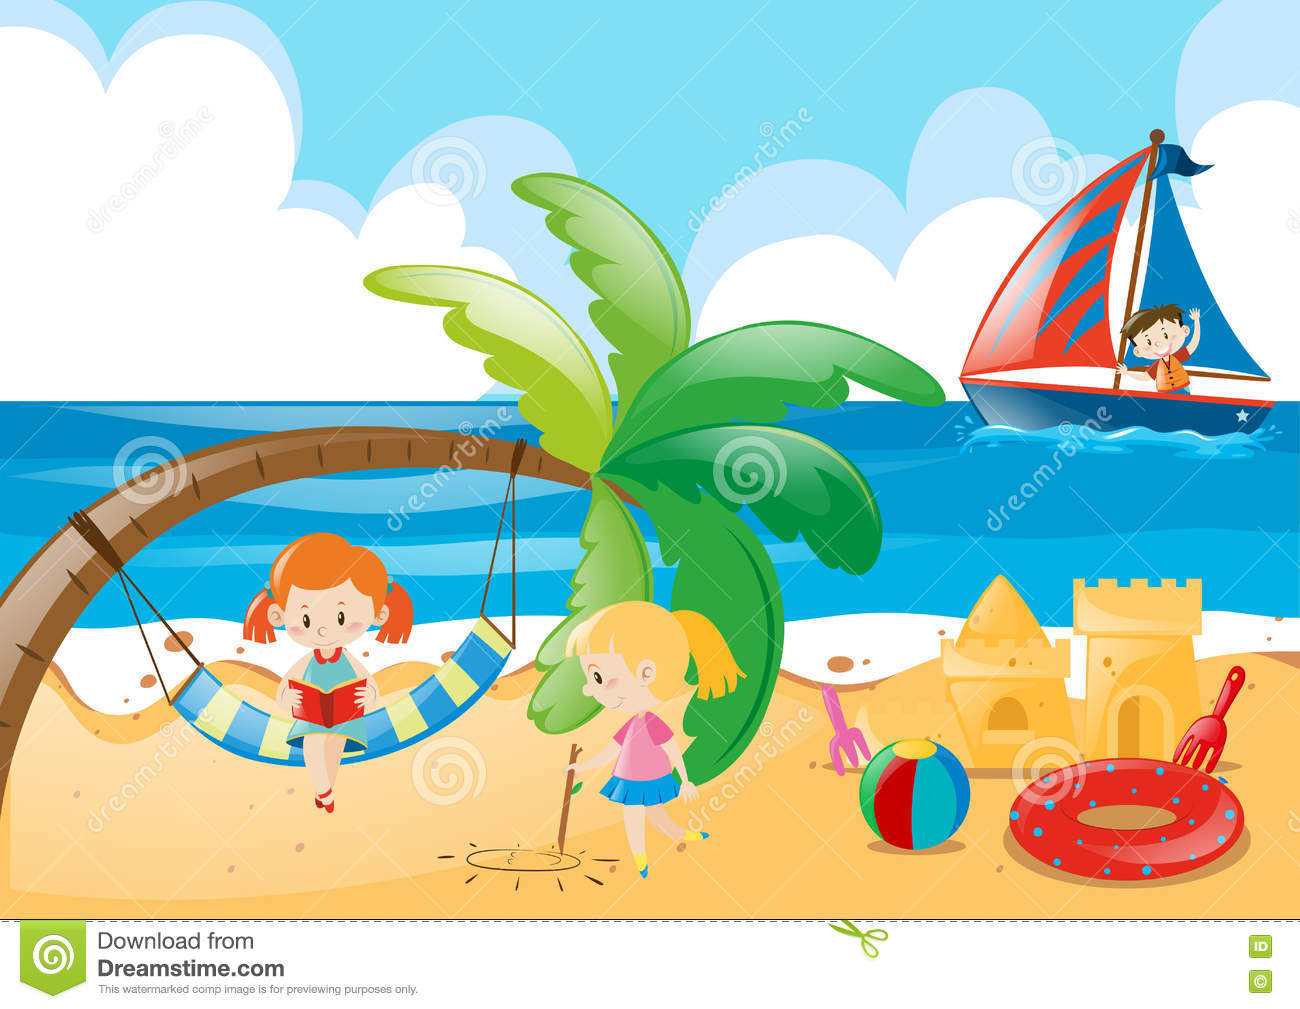 beach scene with kids playing stock vector illustration of holiday rh dreamstime com beach scene clipart vector beach scene clipart vector